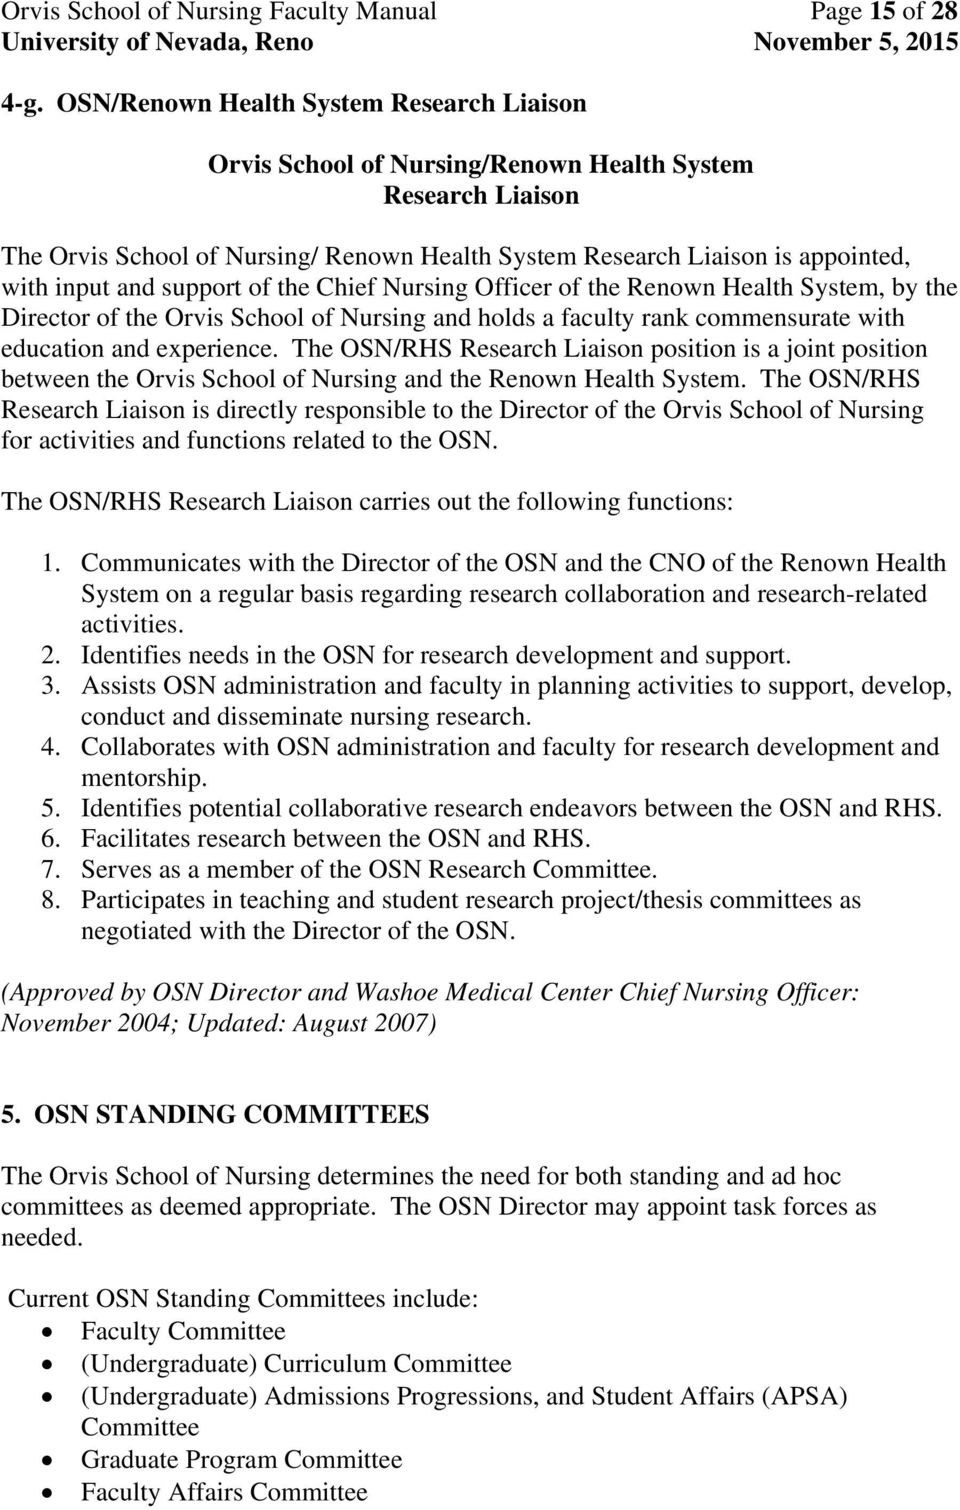 support of the Chief Nursing Officer of the Renown Health System, by the Director of the Orvis School of Nursing and holds a faculty rank commensurate with education and experience.